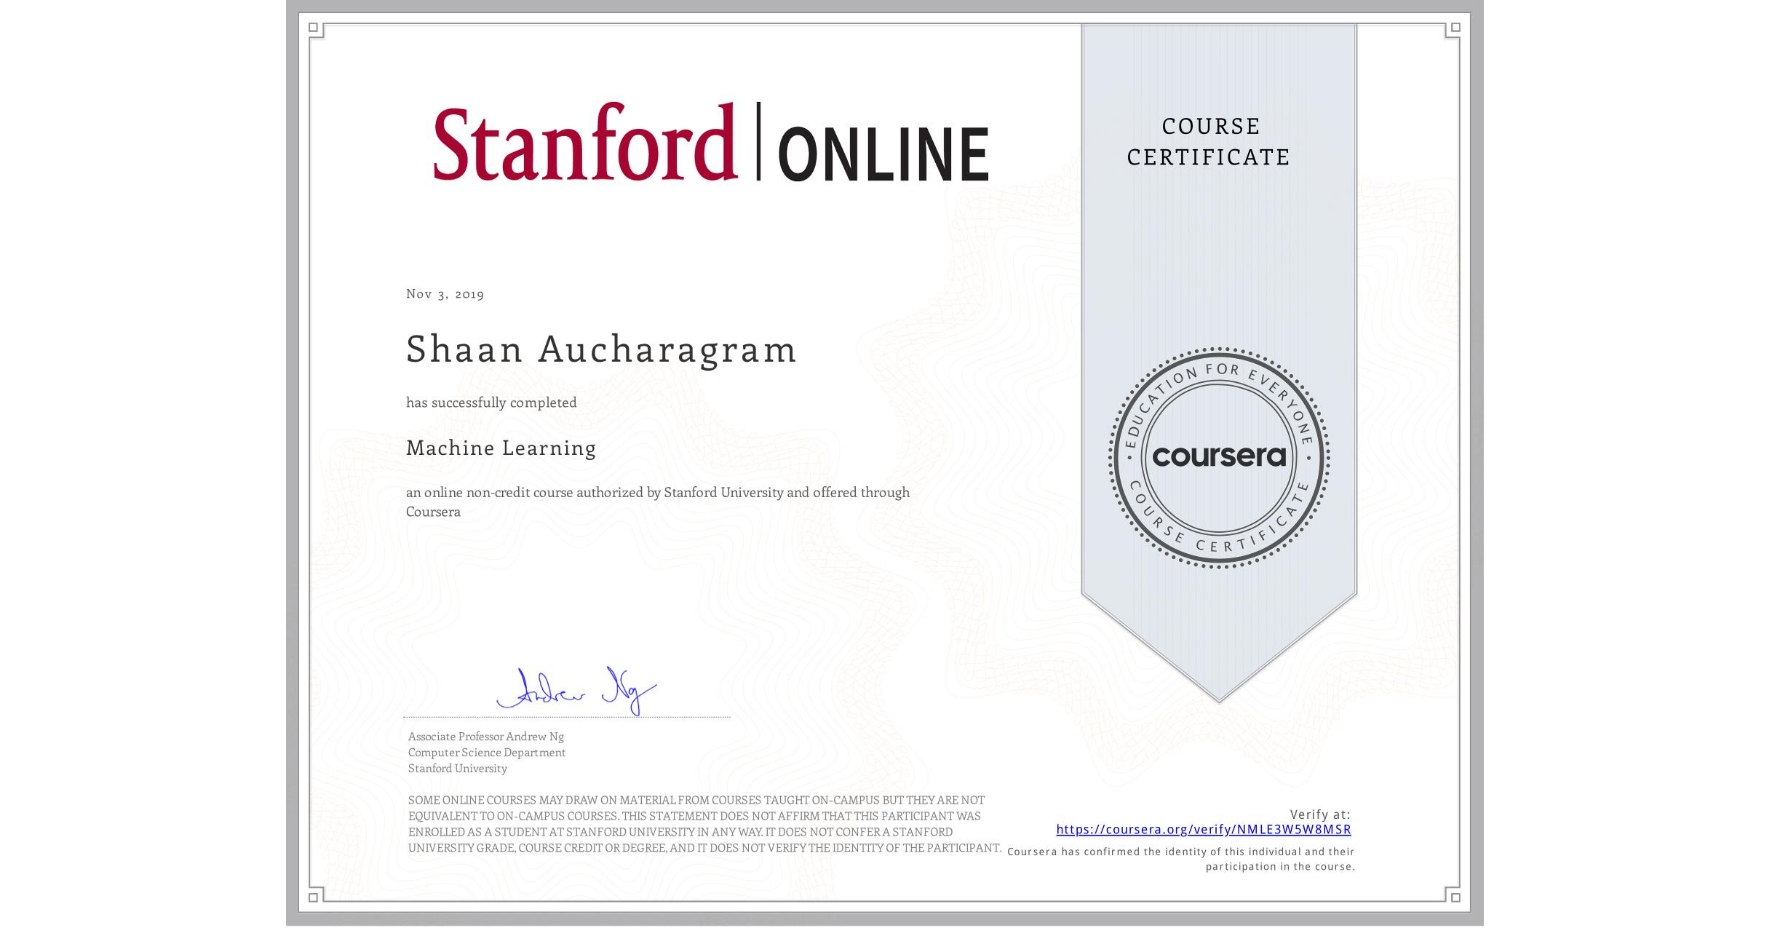 View certificate for Shaan Aucharagram, Machine Learning, an online non-credit course authorized by Stanford University and offered through Coursera